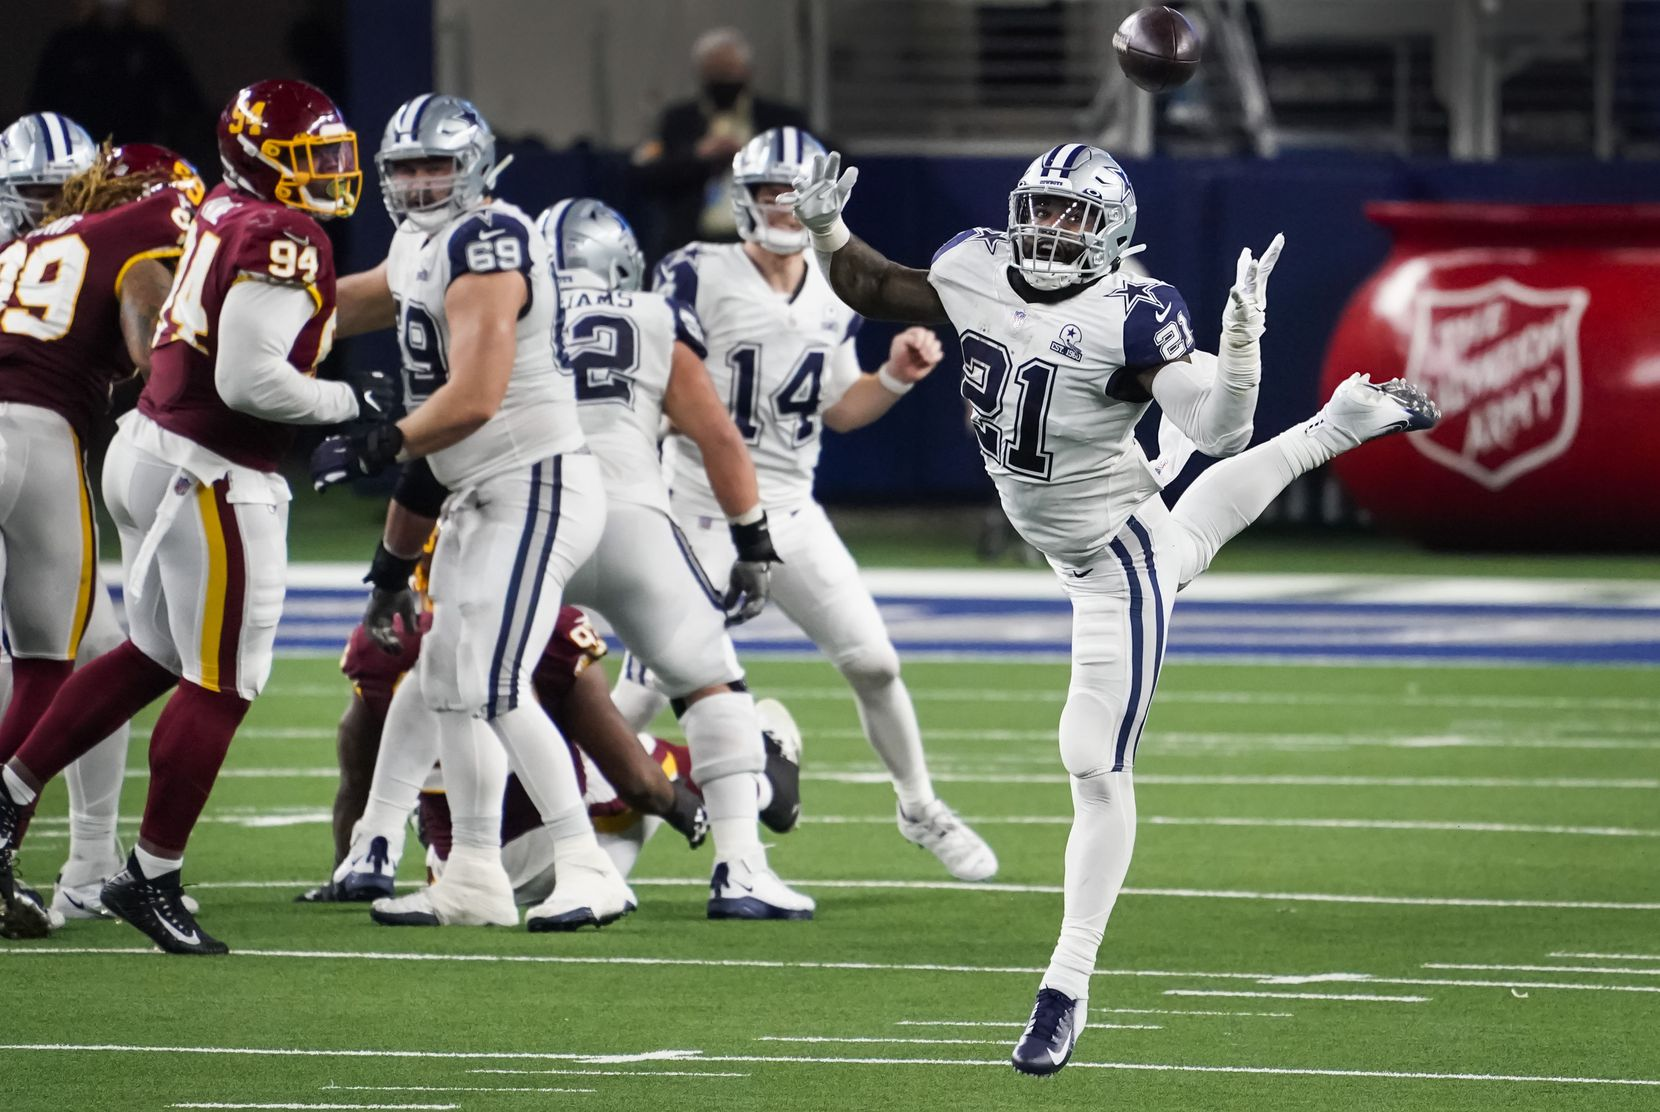 Dallas Cowboys running back Ezekiel Elliott (21) has a pass from quarterback Andy Dalton (14) go off his hands during the fourth quarter of an NFL football game against the Washington Football Team at AT&T Stadium on Thursday, Nov. 26, 2020, in Arlington. (Smiley N. Pool/The Dallas Morning News)